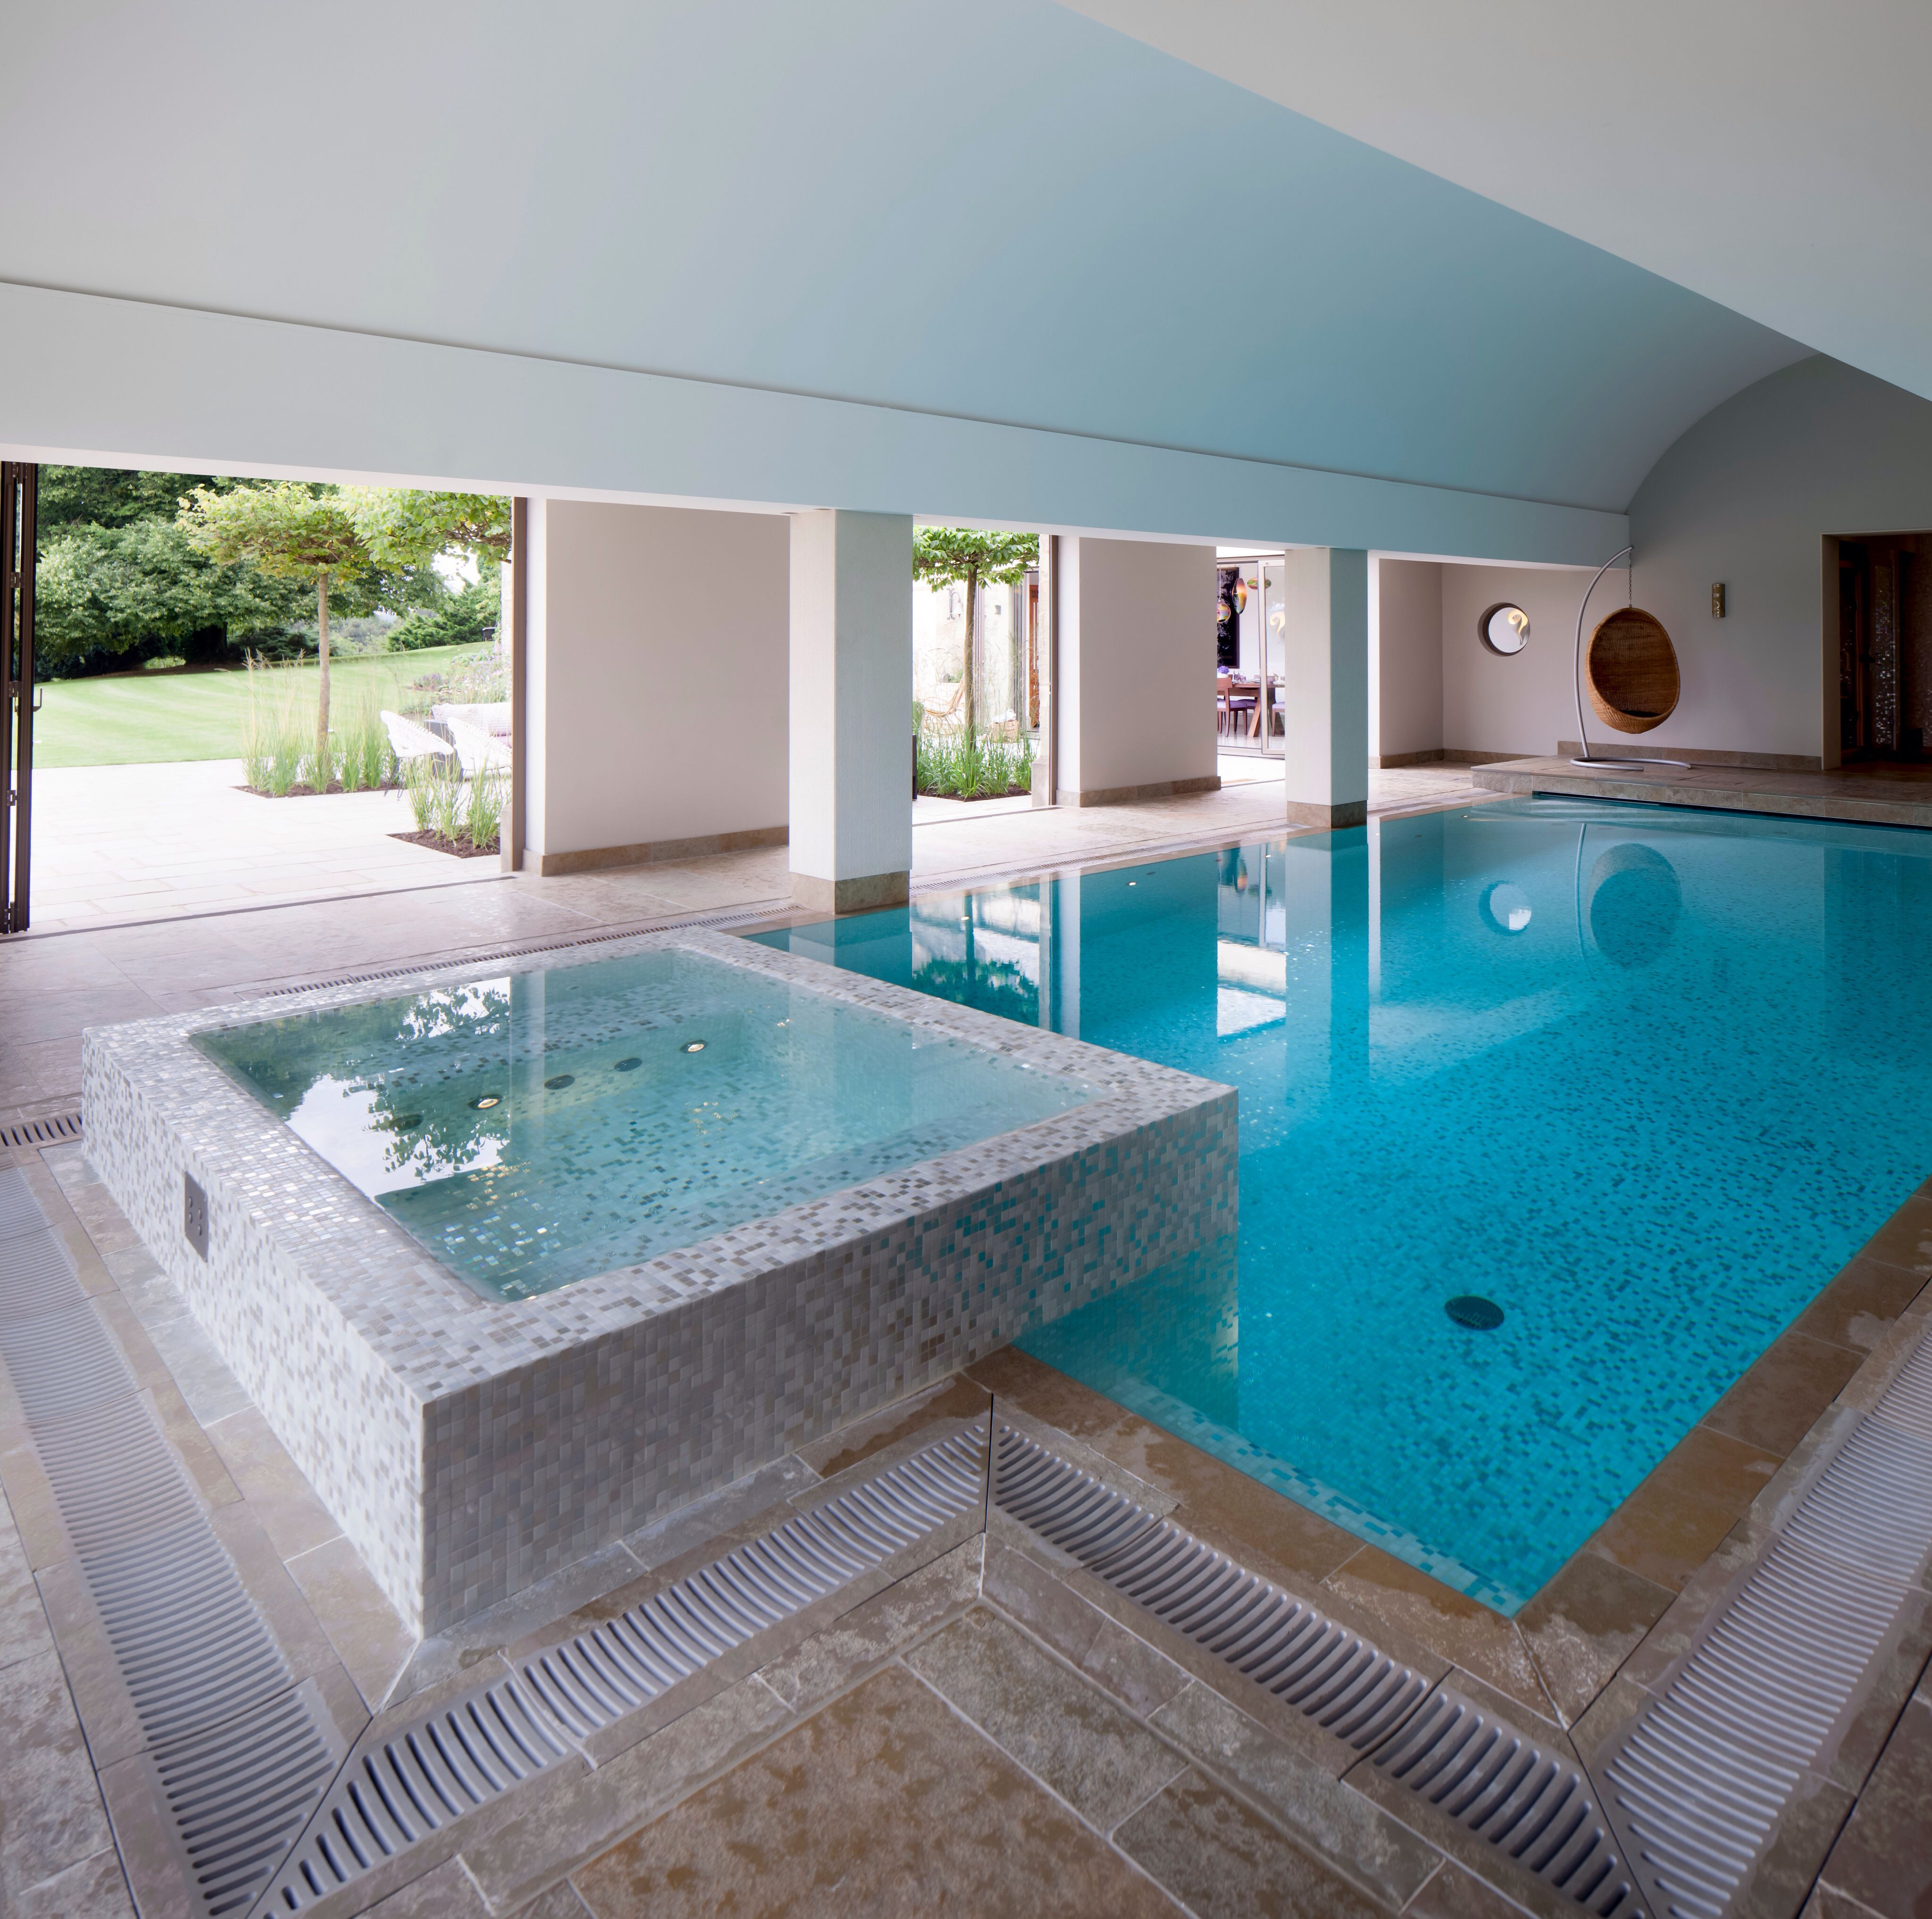 Jacuzzi In The Pool Jacuzzi In A Pool Pool Indoor Swimming Pools Swimming Pools